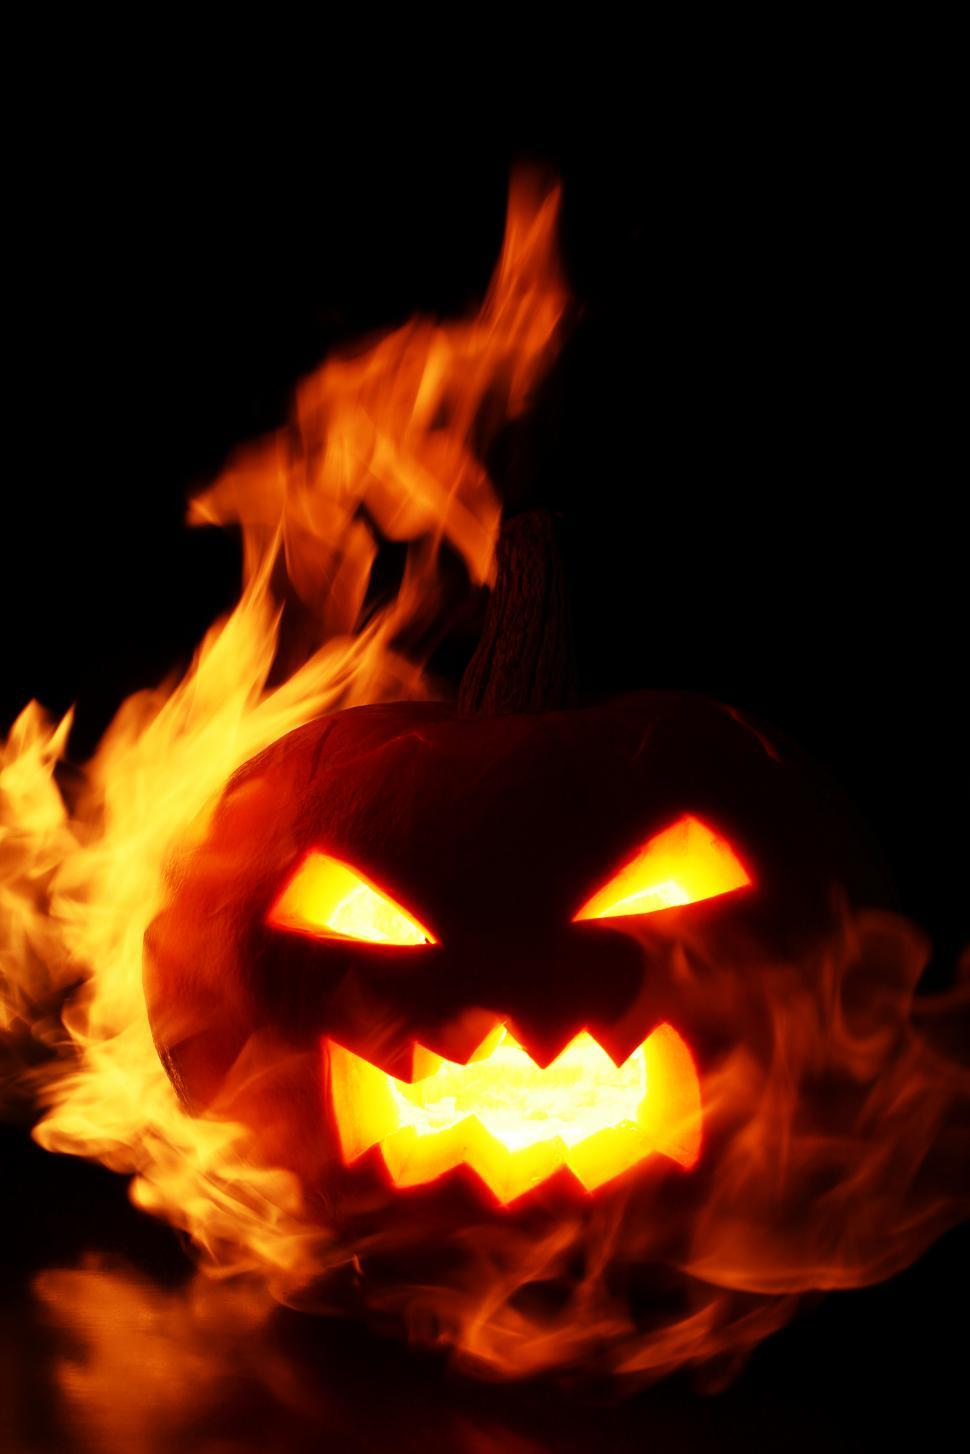 Download Free Stock Photo of Carved pumpkin engulfed in flames